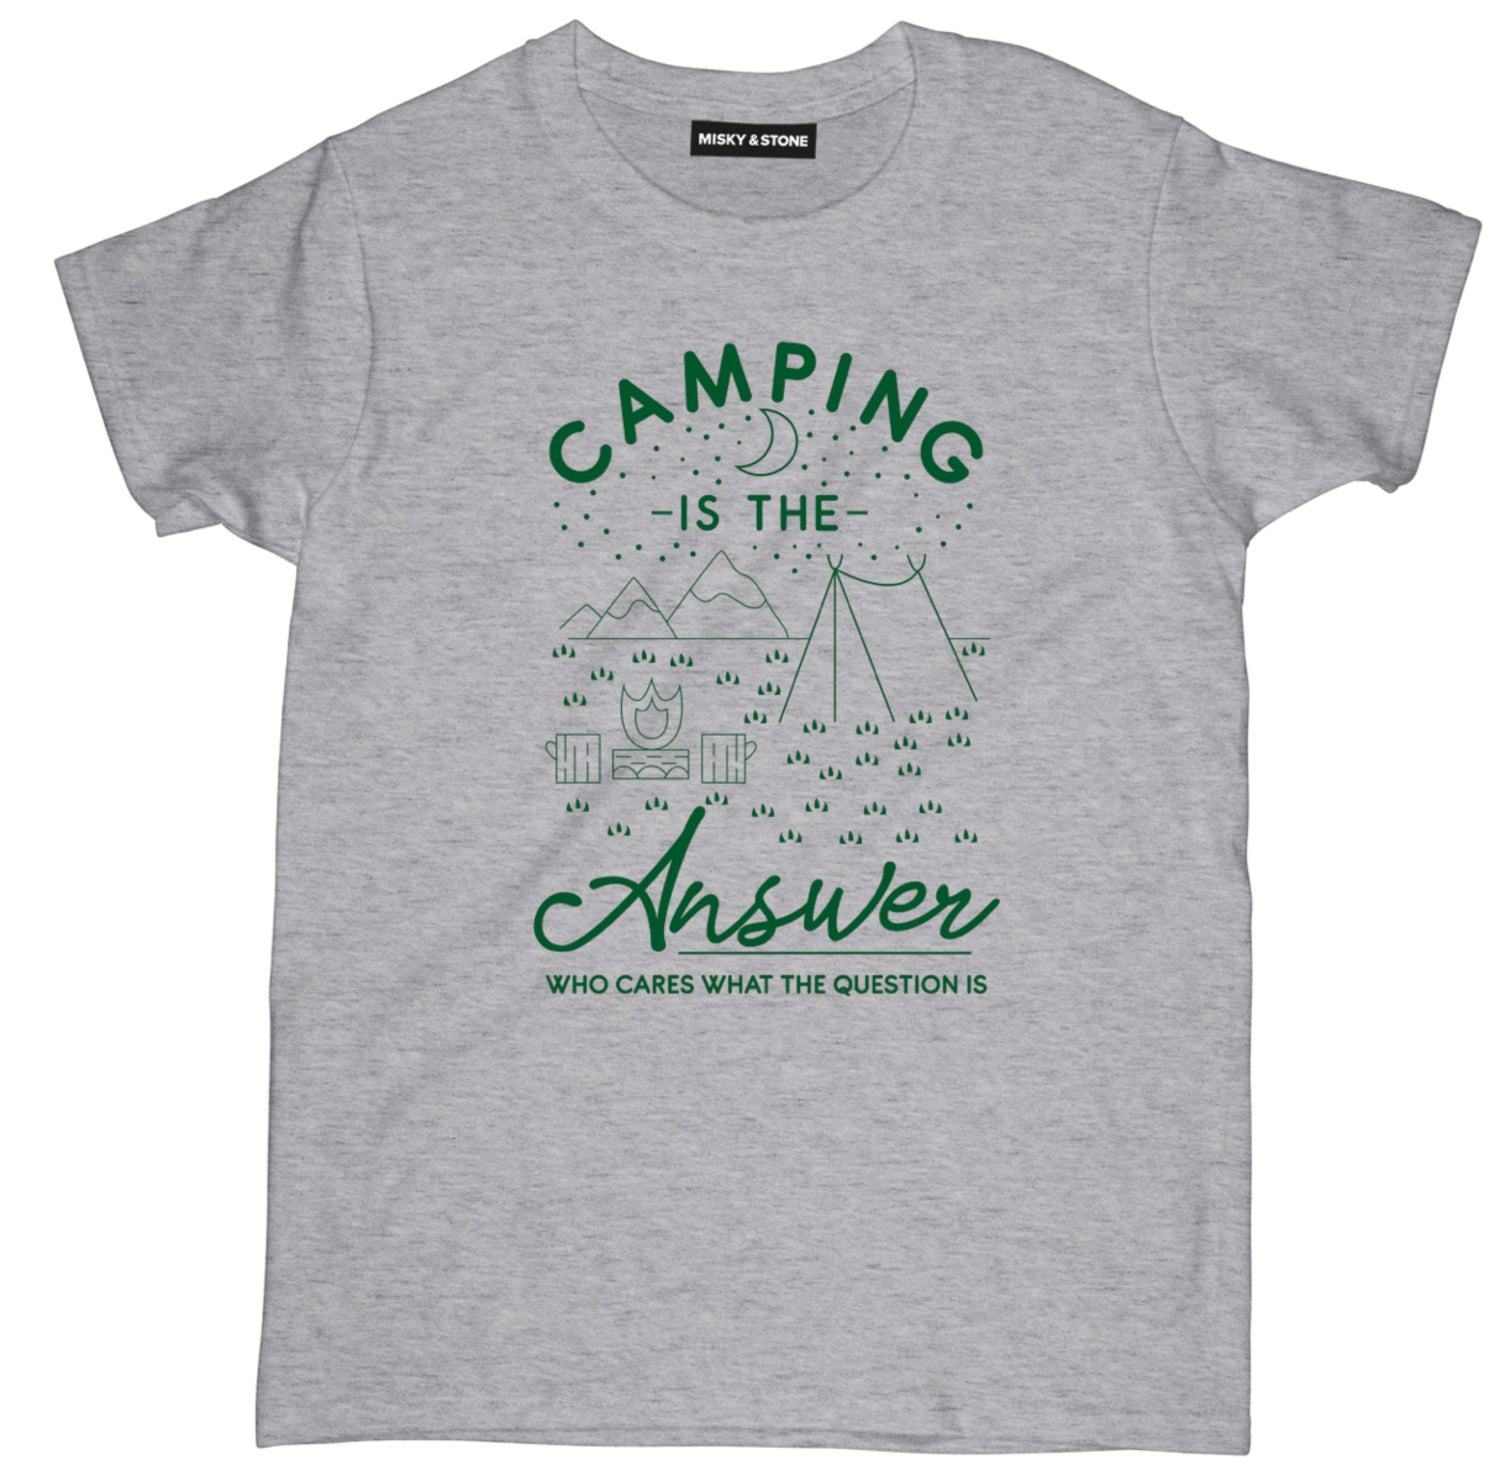 camping is the answer t shirt, camping shirts, camp shirt, funny camping shirts, camping tee shirts, funny camping t shirts, camp t shirt designs, camp shirt designs, cool camp tees, cool camping tees, camping graphic tees,